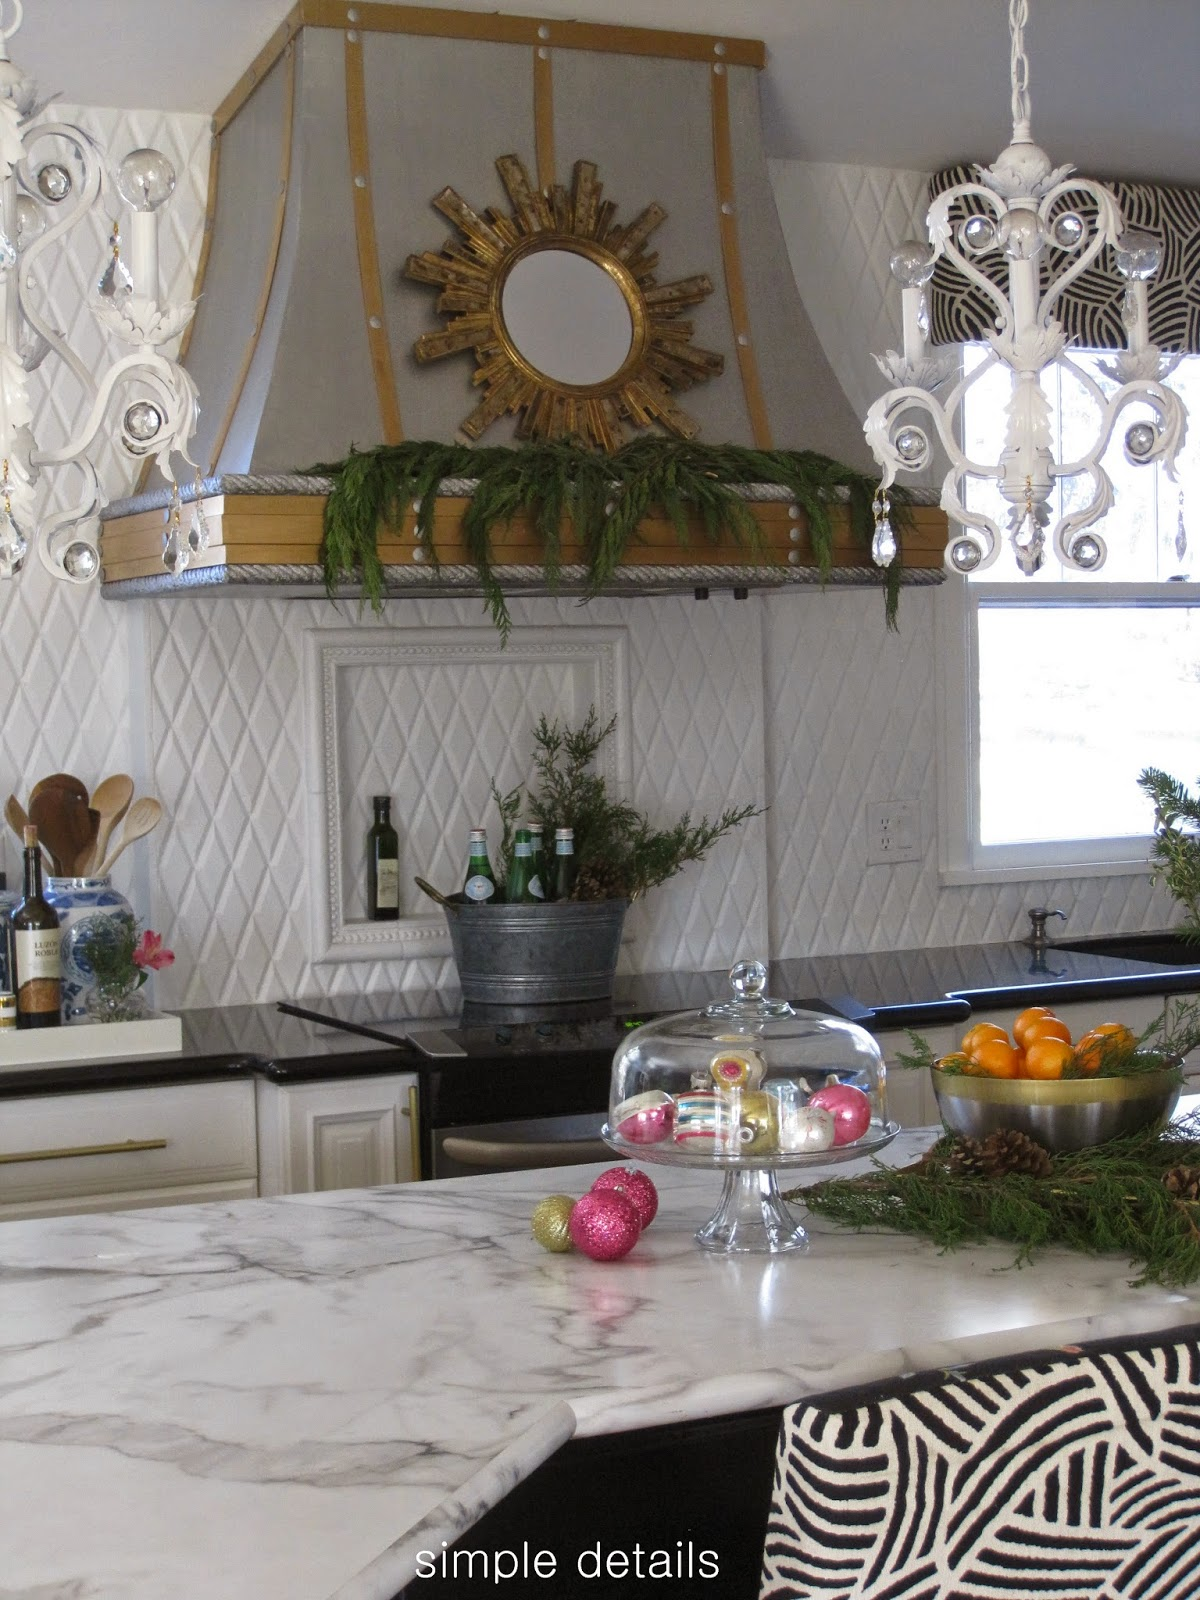 pink countertops kitchen reclaim paint cabinets simple details: christmas 2014 ~ home tour